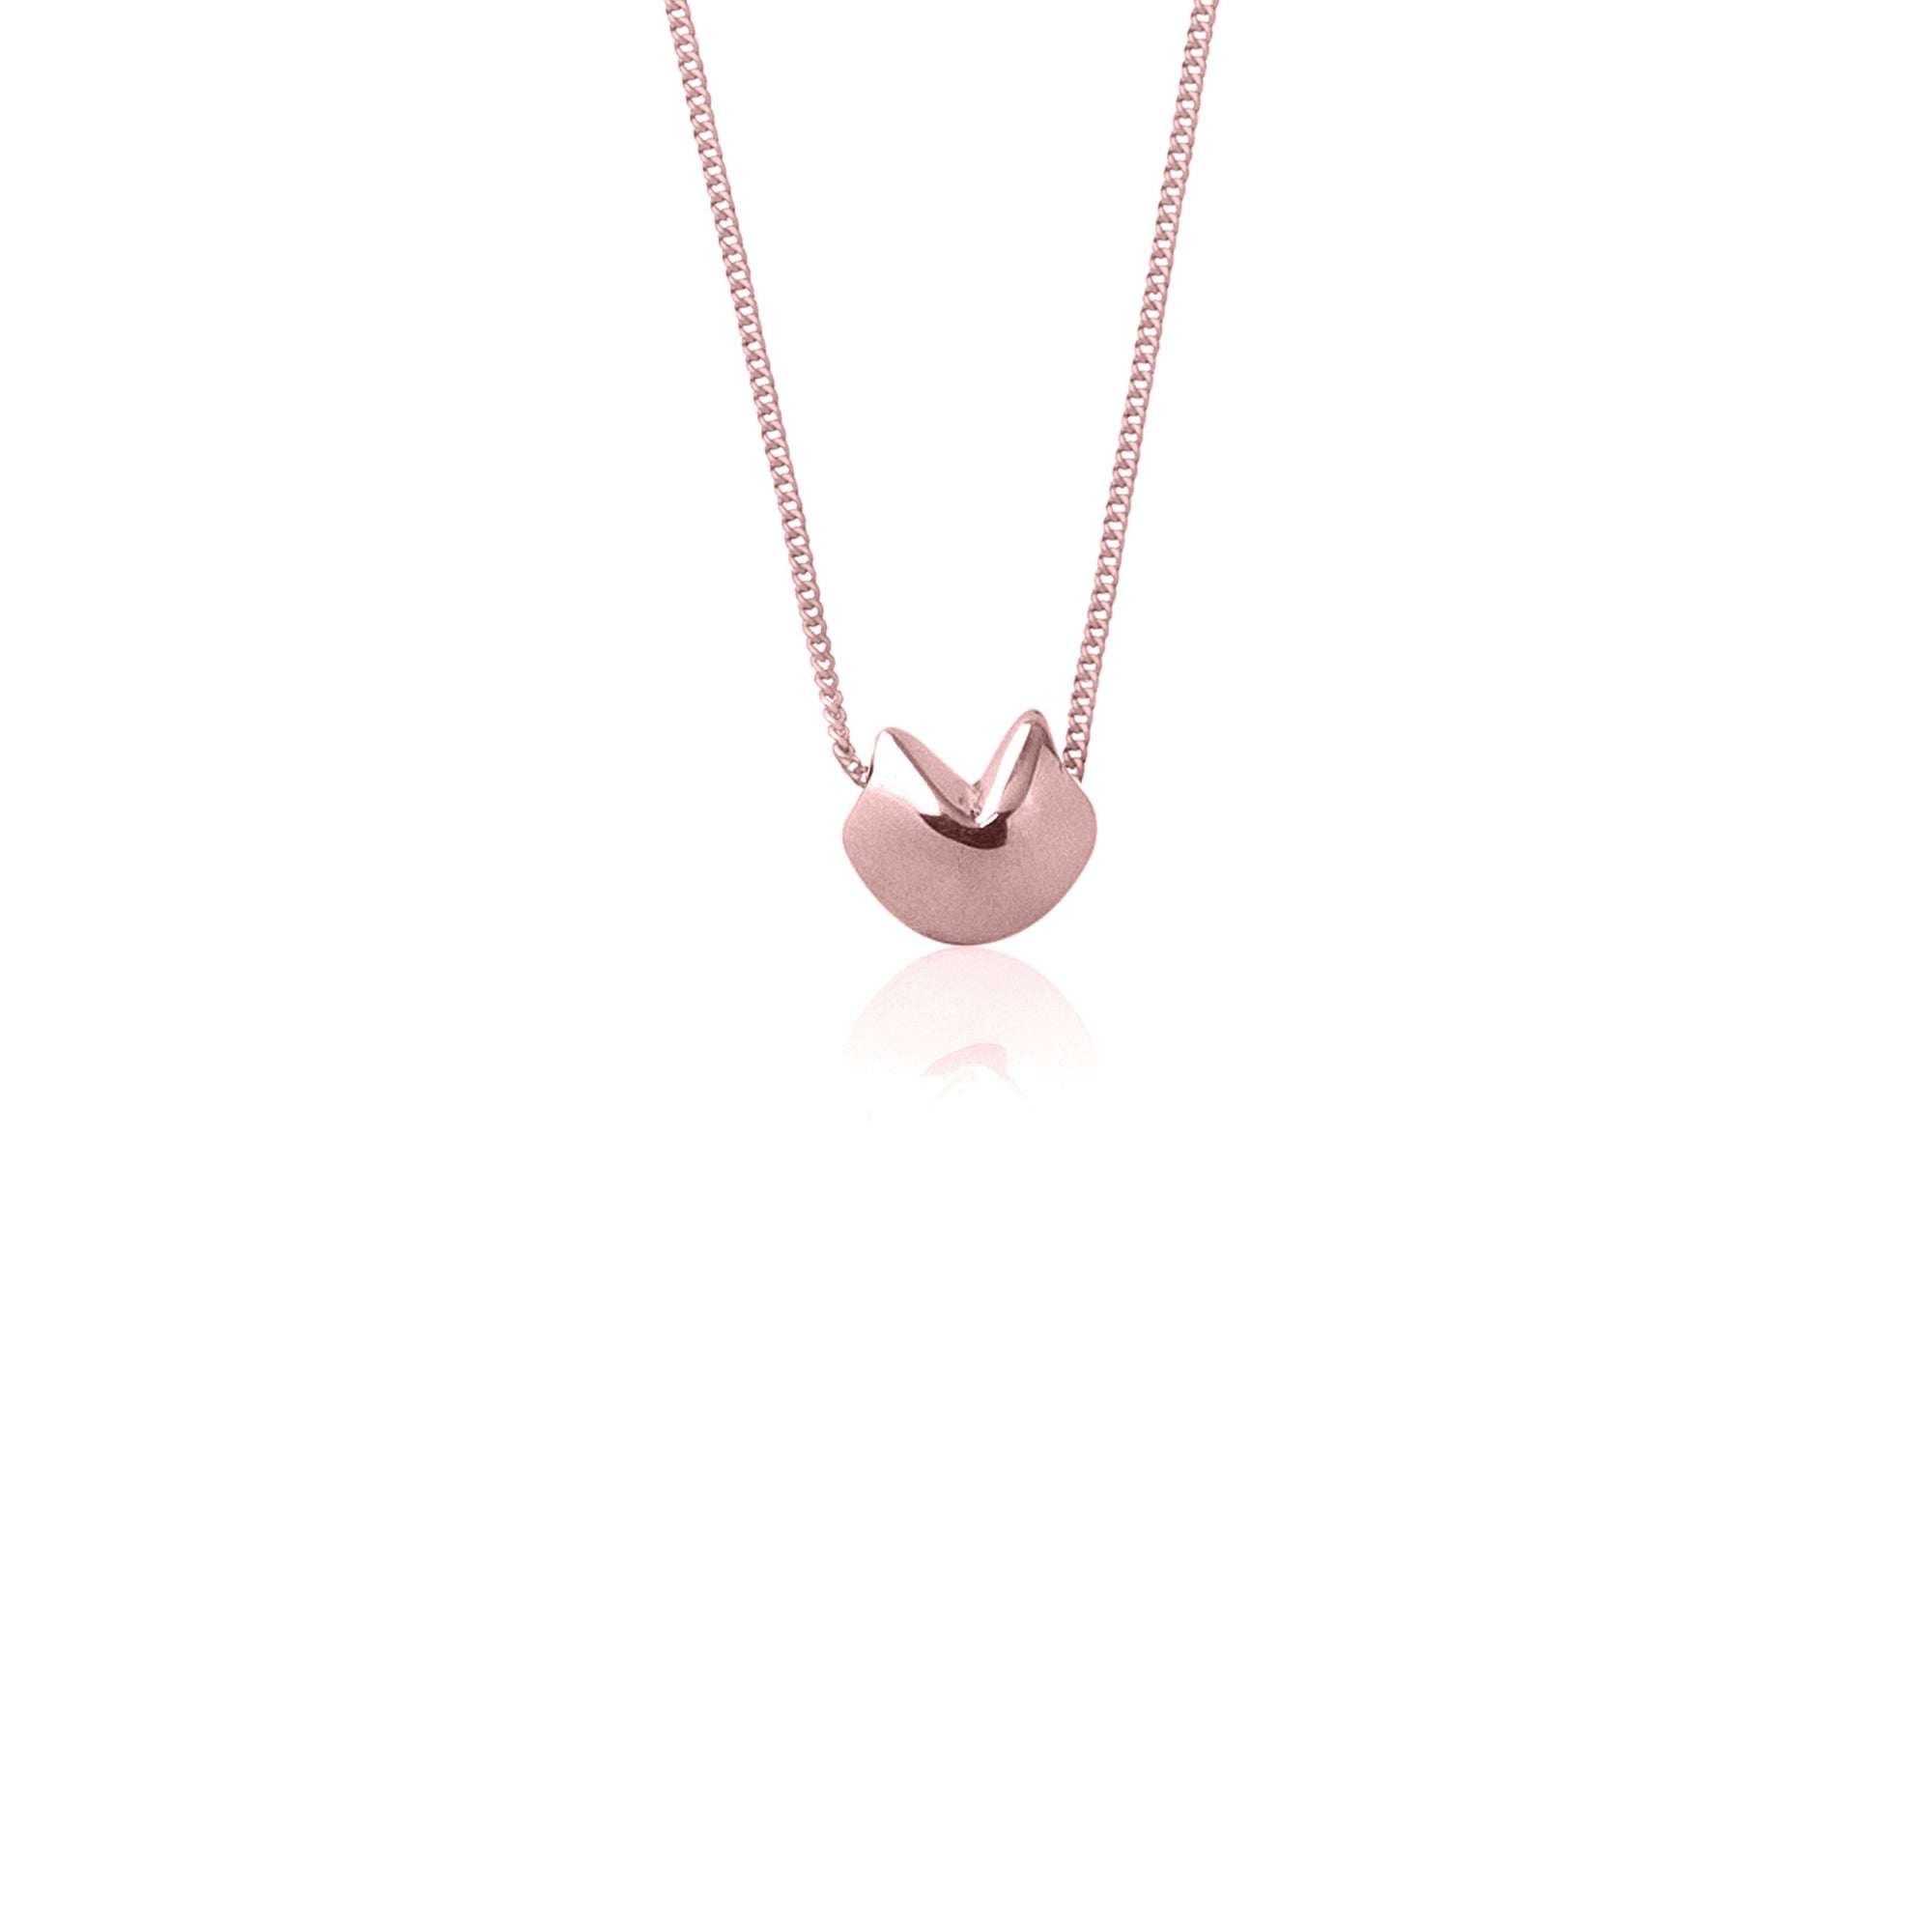 Awestruck in Luck Necklace (Rose Gold)